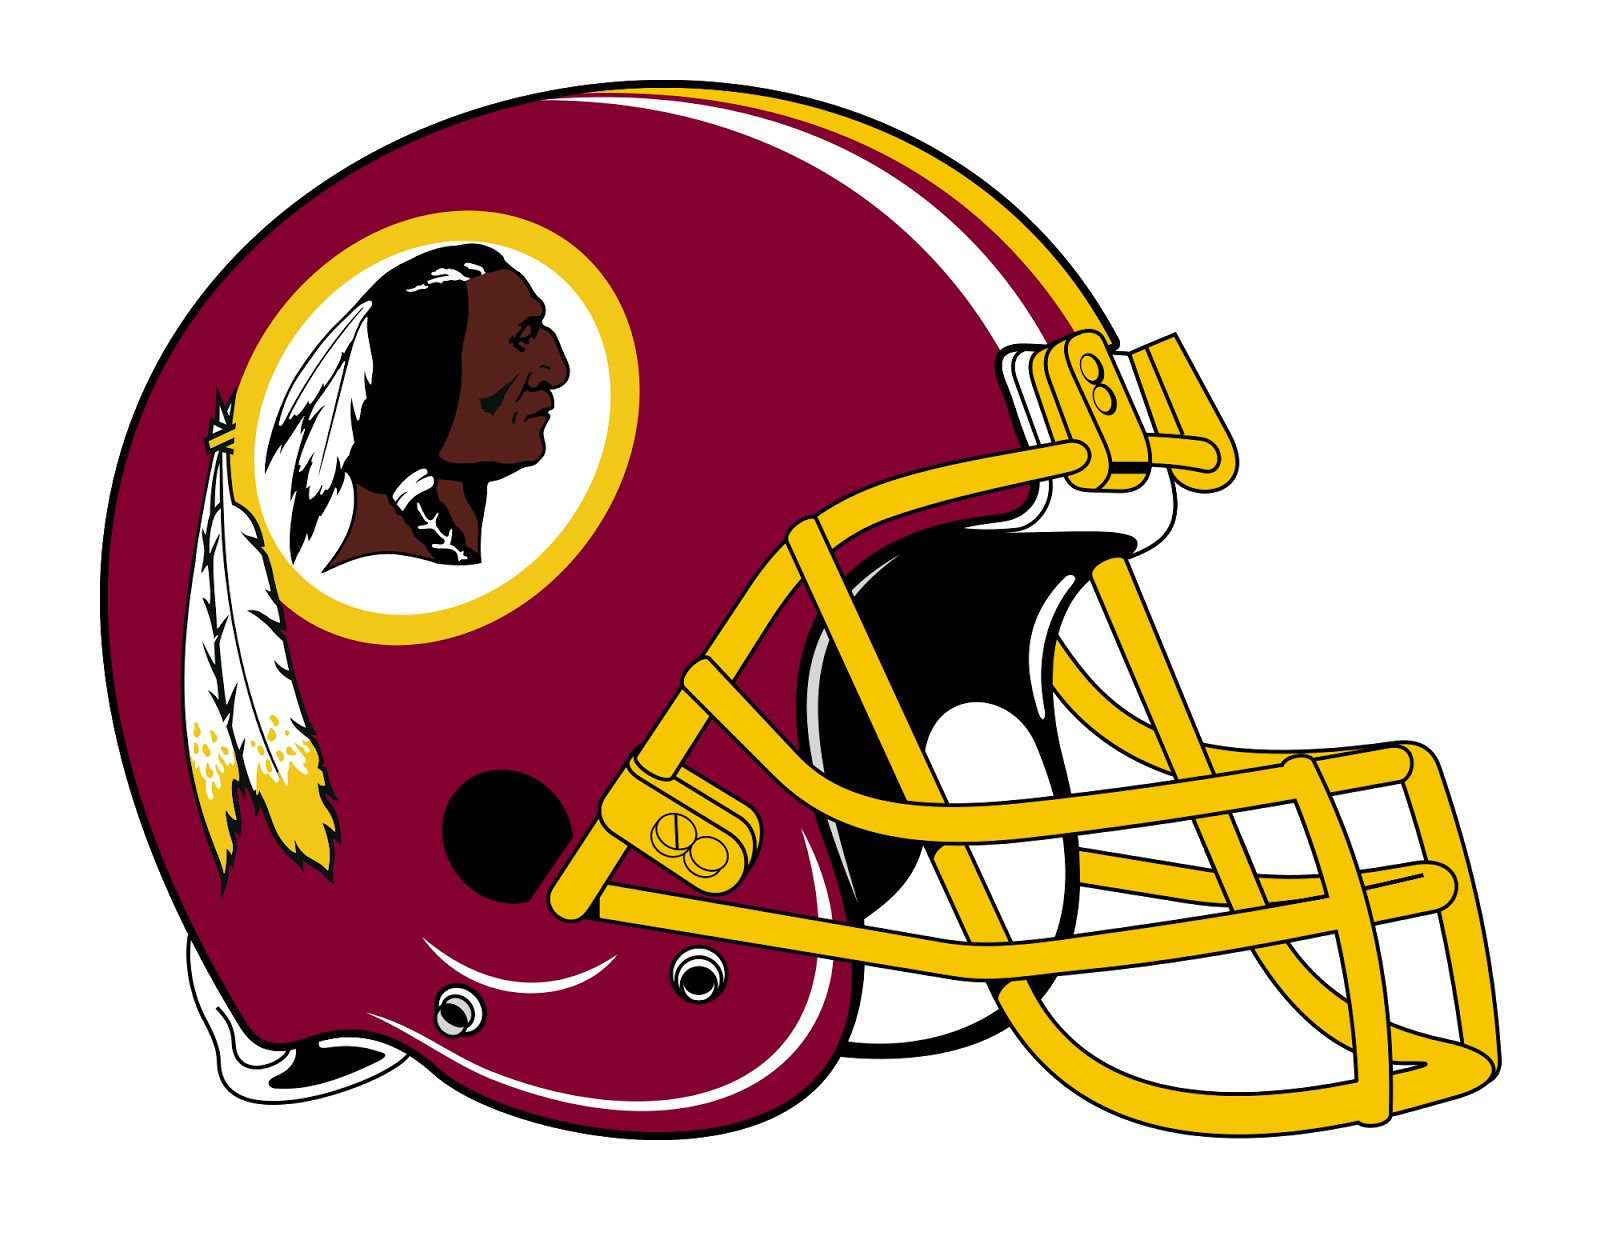 Pin by freepngclipart on Images Redskins helmet